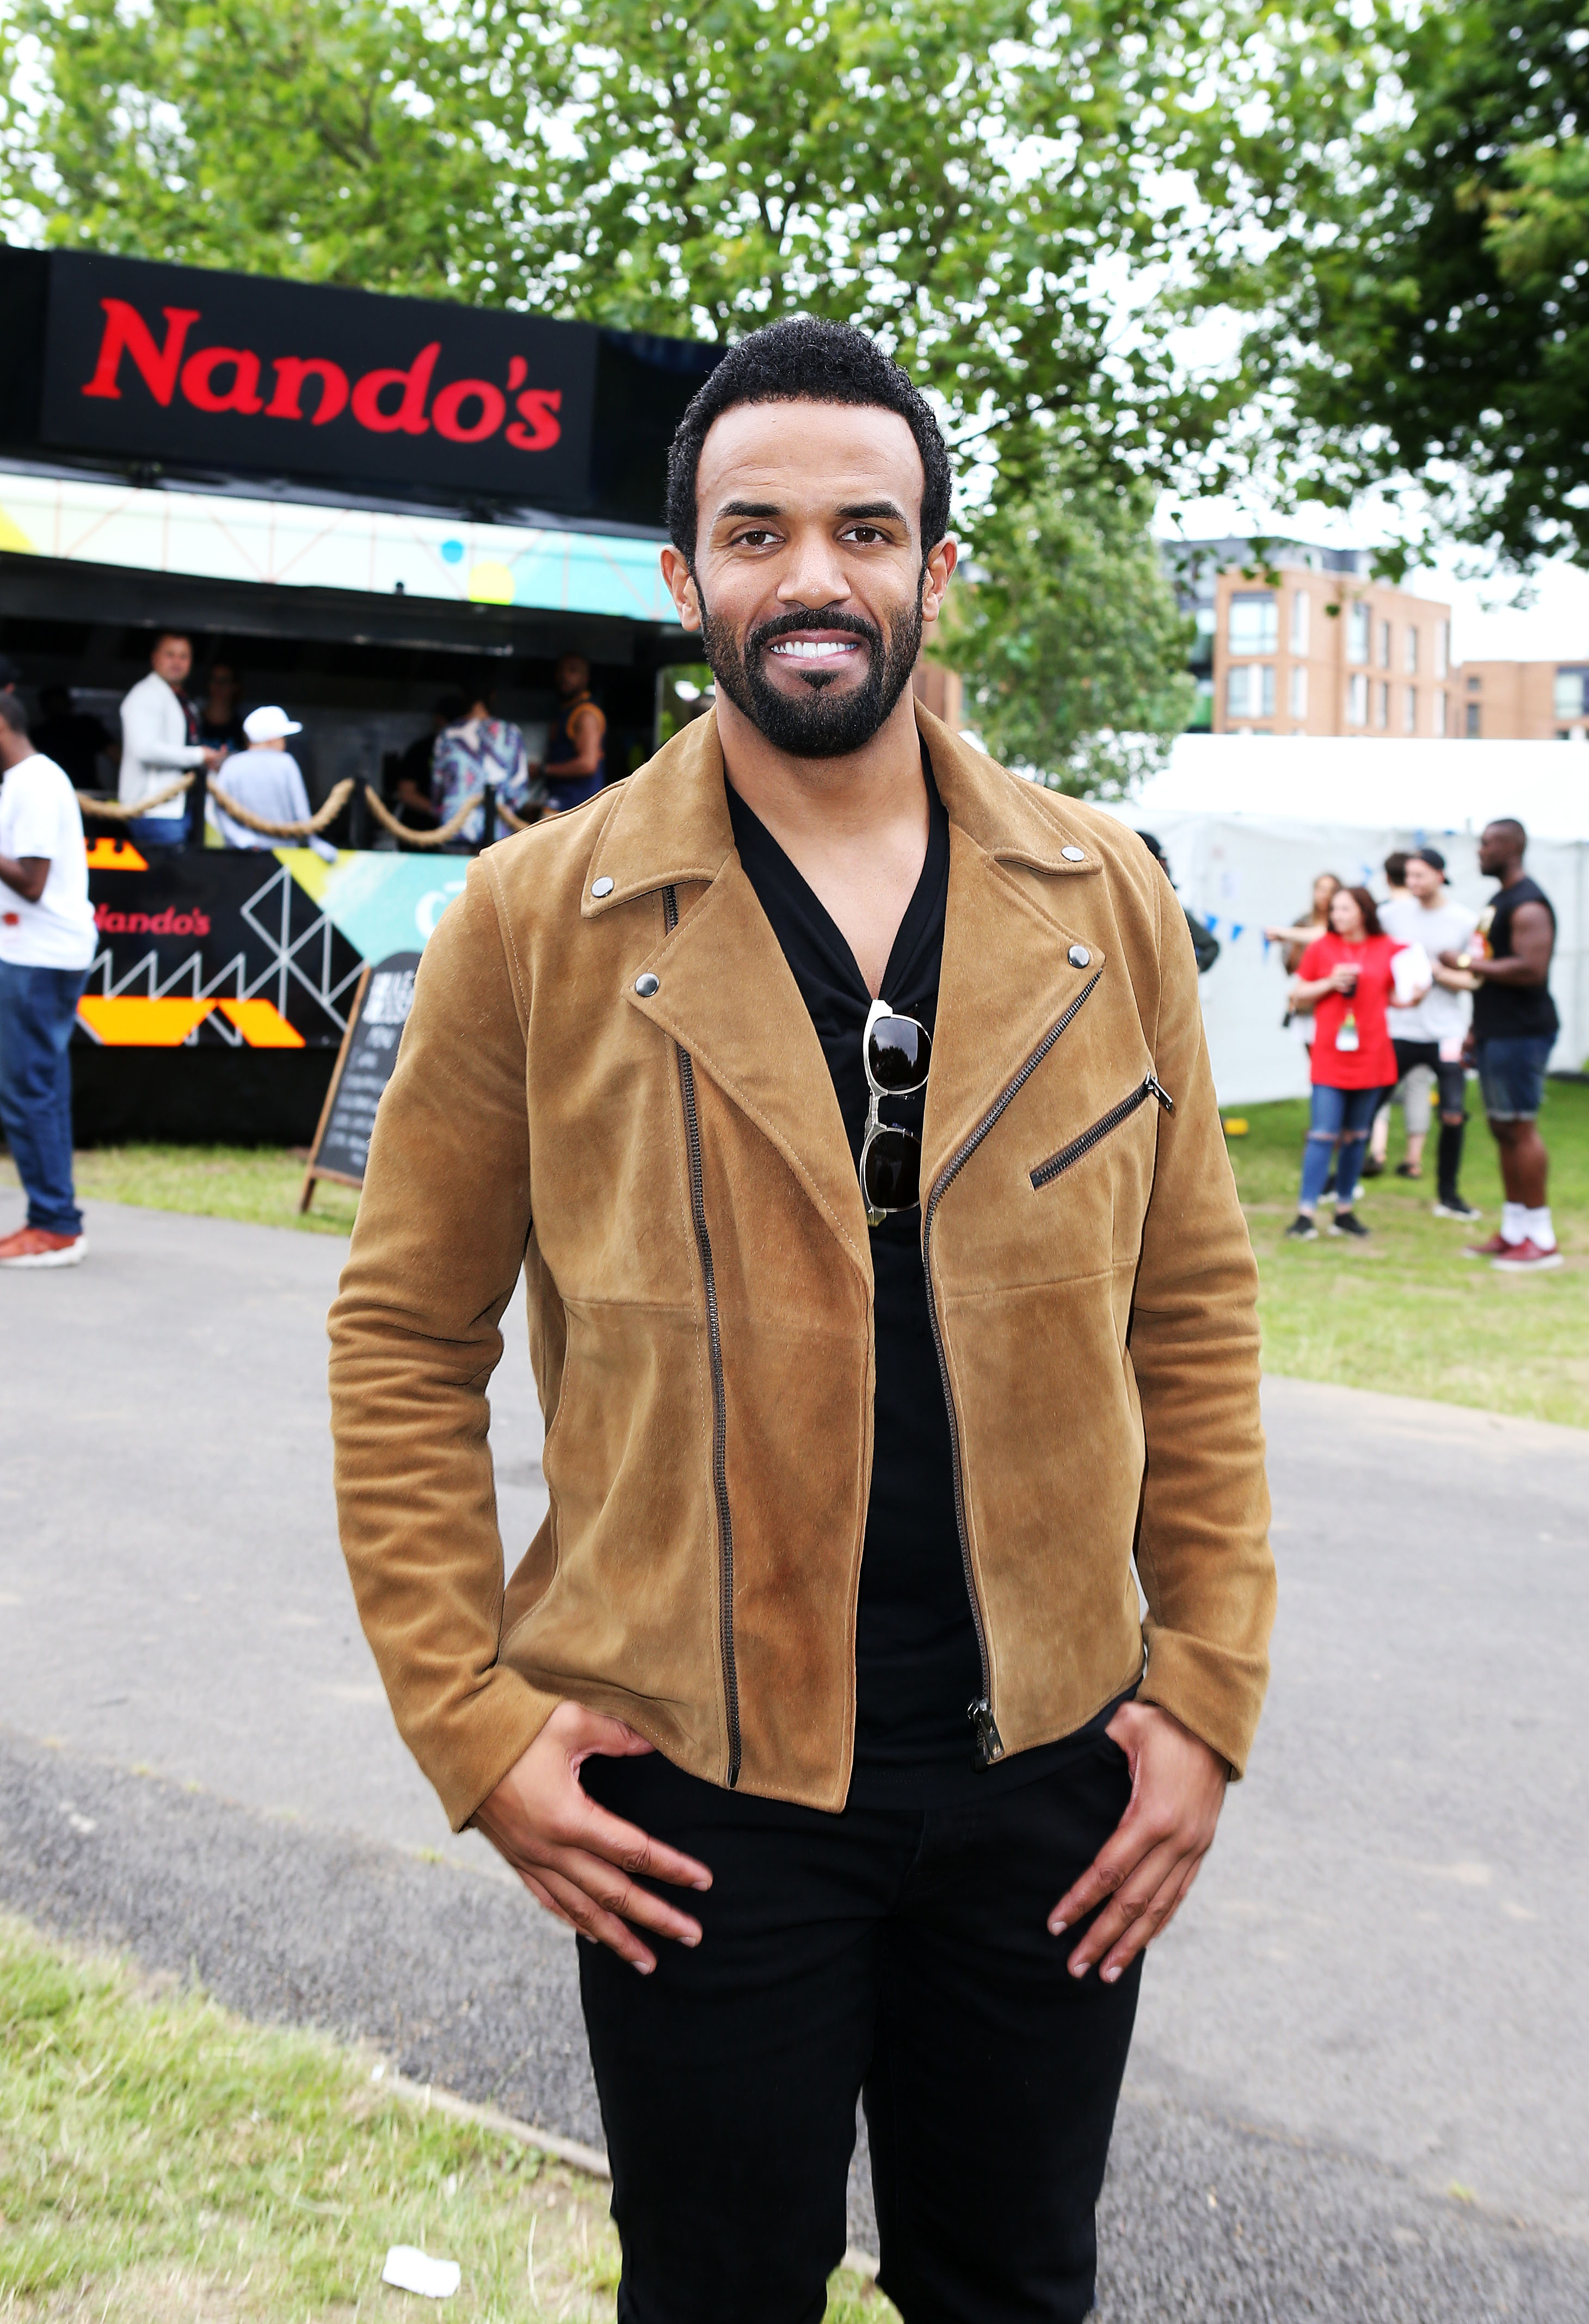 Craig David dropped by Nando's Cock o' Van before his performance at Wireless festival in Finsbury Park, London.